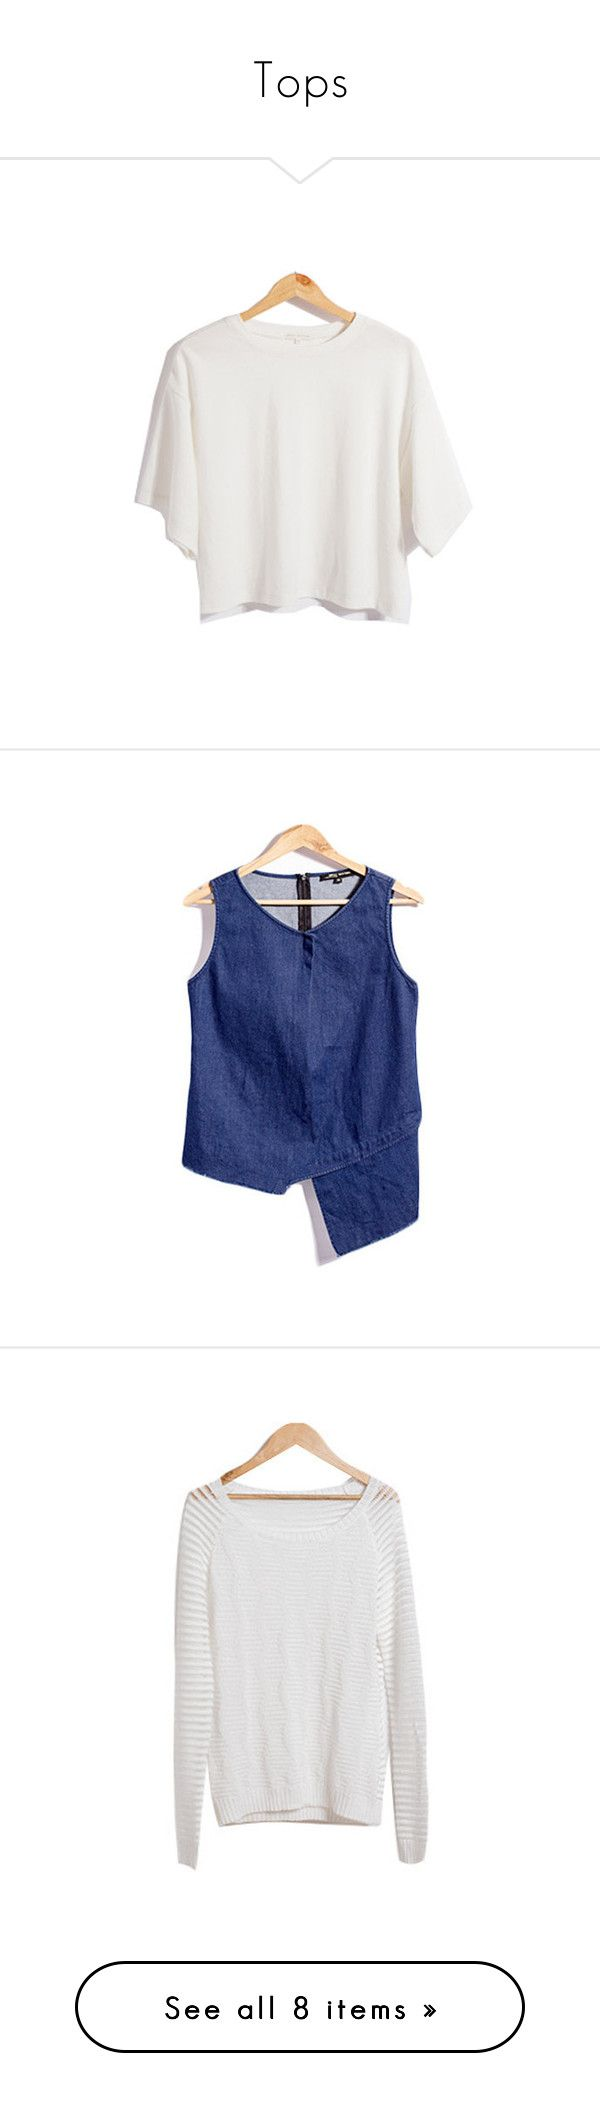 """""""Tops"""" by stargazerfashion on Polyvore featuring tops, t-shirts, crop t shirt, tall t shirts, asymmetrical top, oversized t shirt, crop tee, tall tops, sleeveless denim top and blue top"""